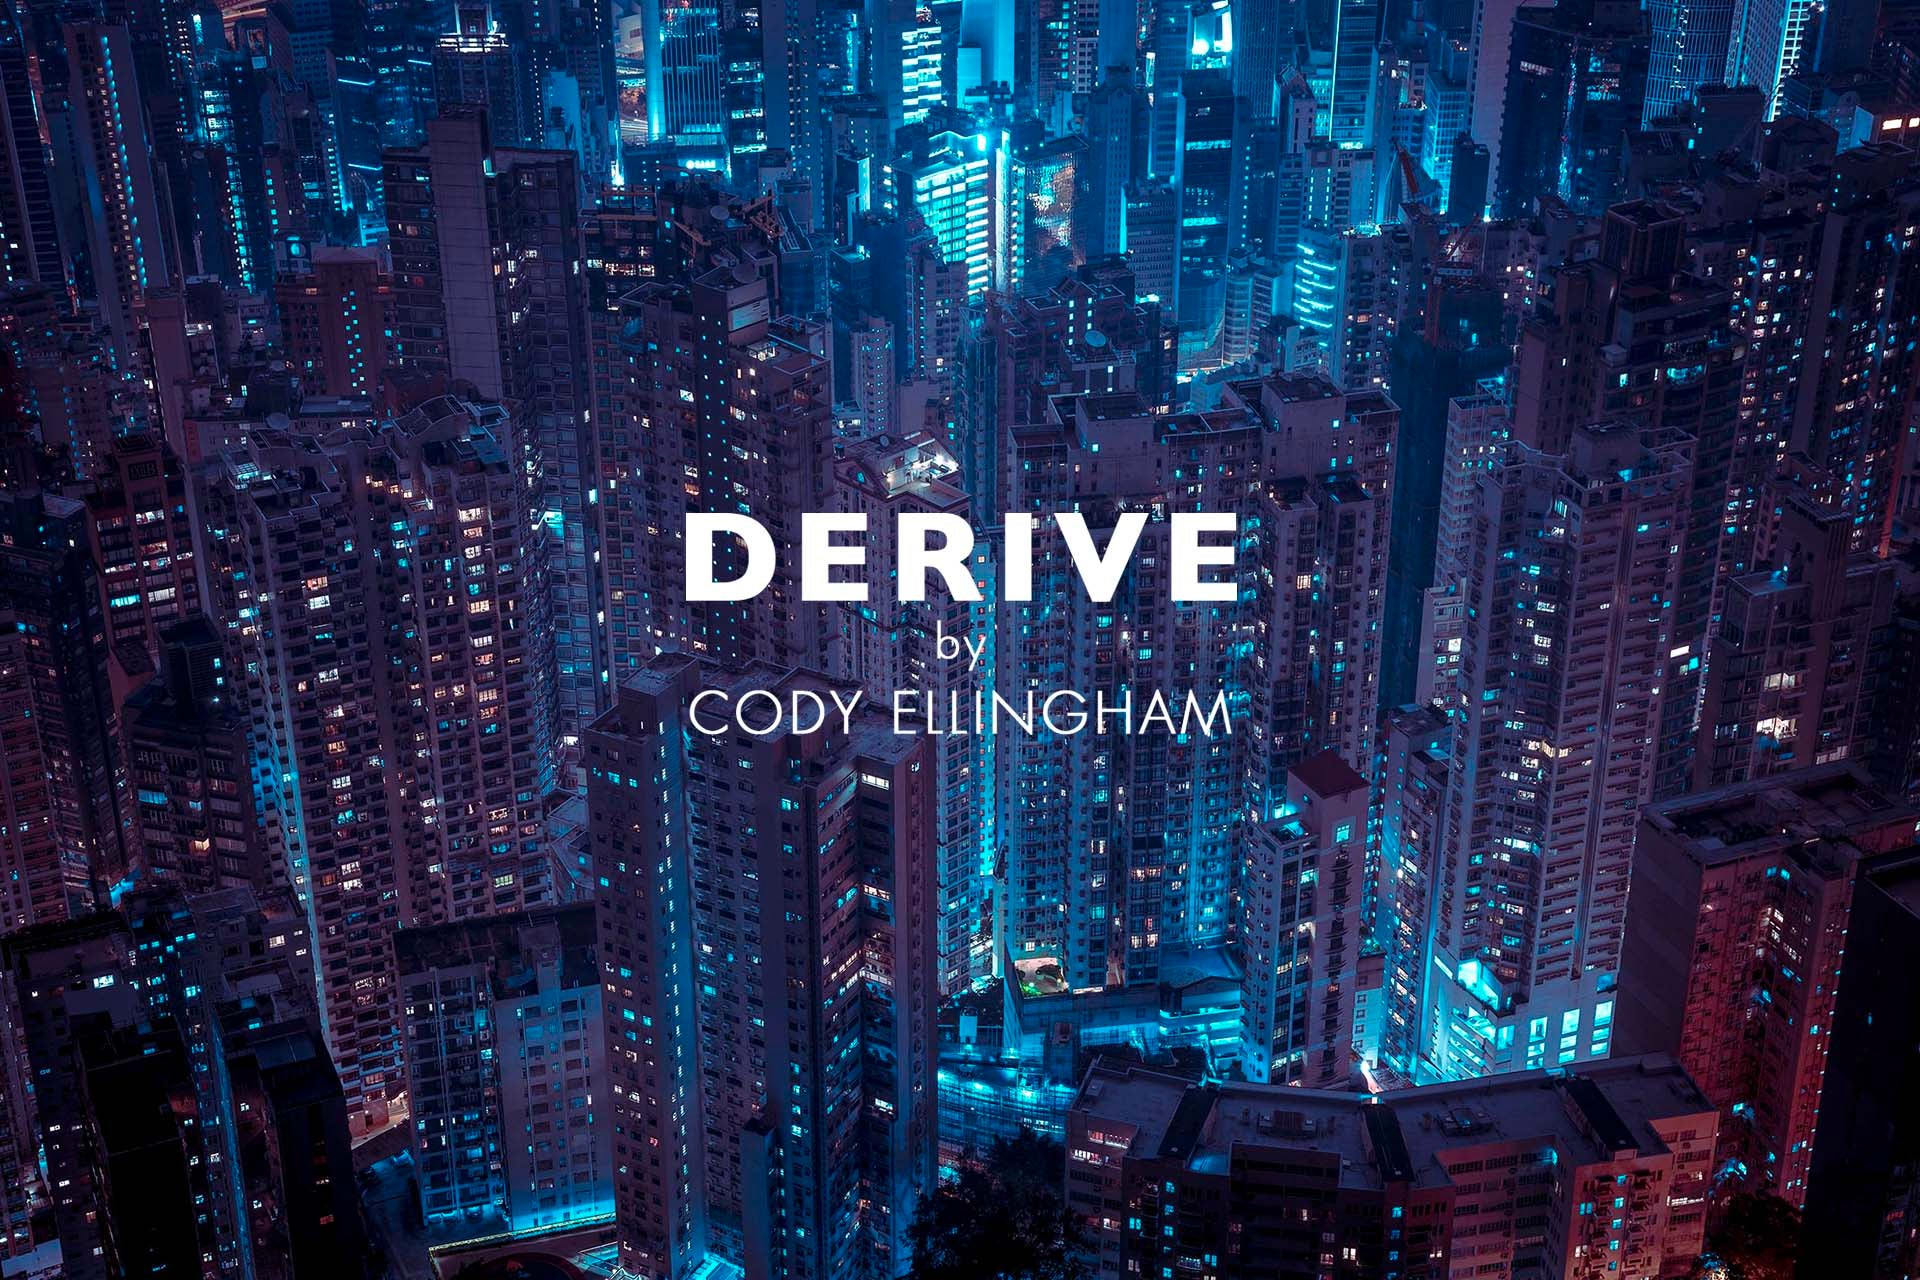 DERIVE Store by Cody Ellingham | It's About Wandering's account image